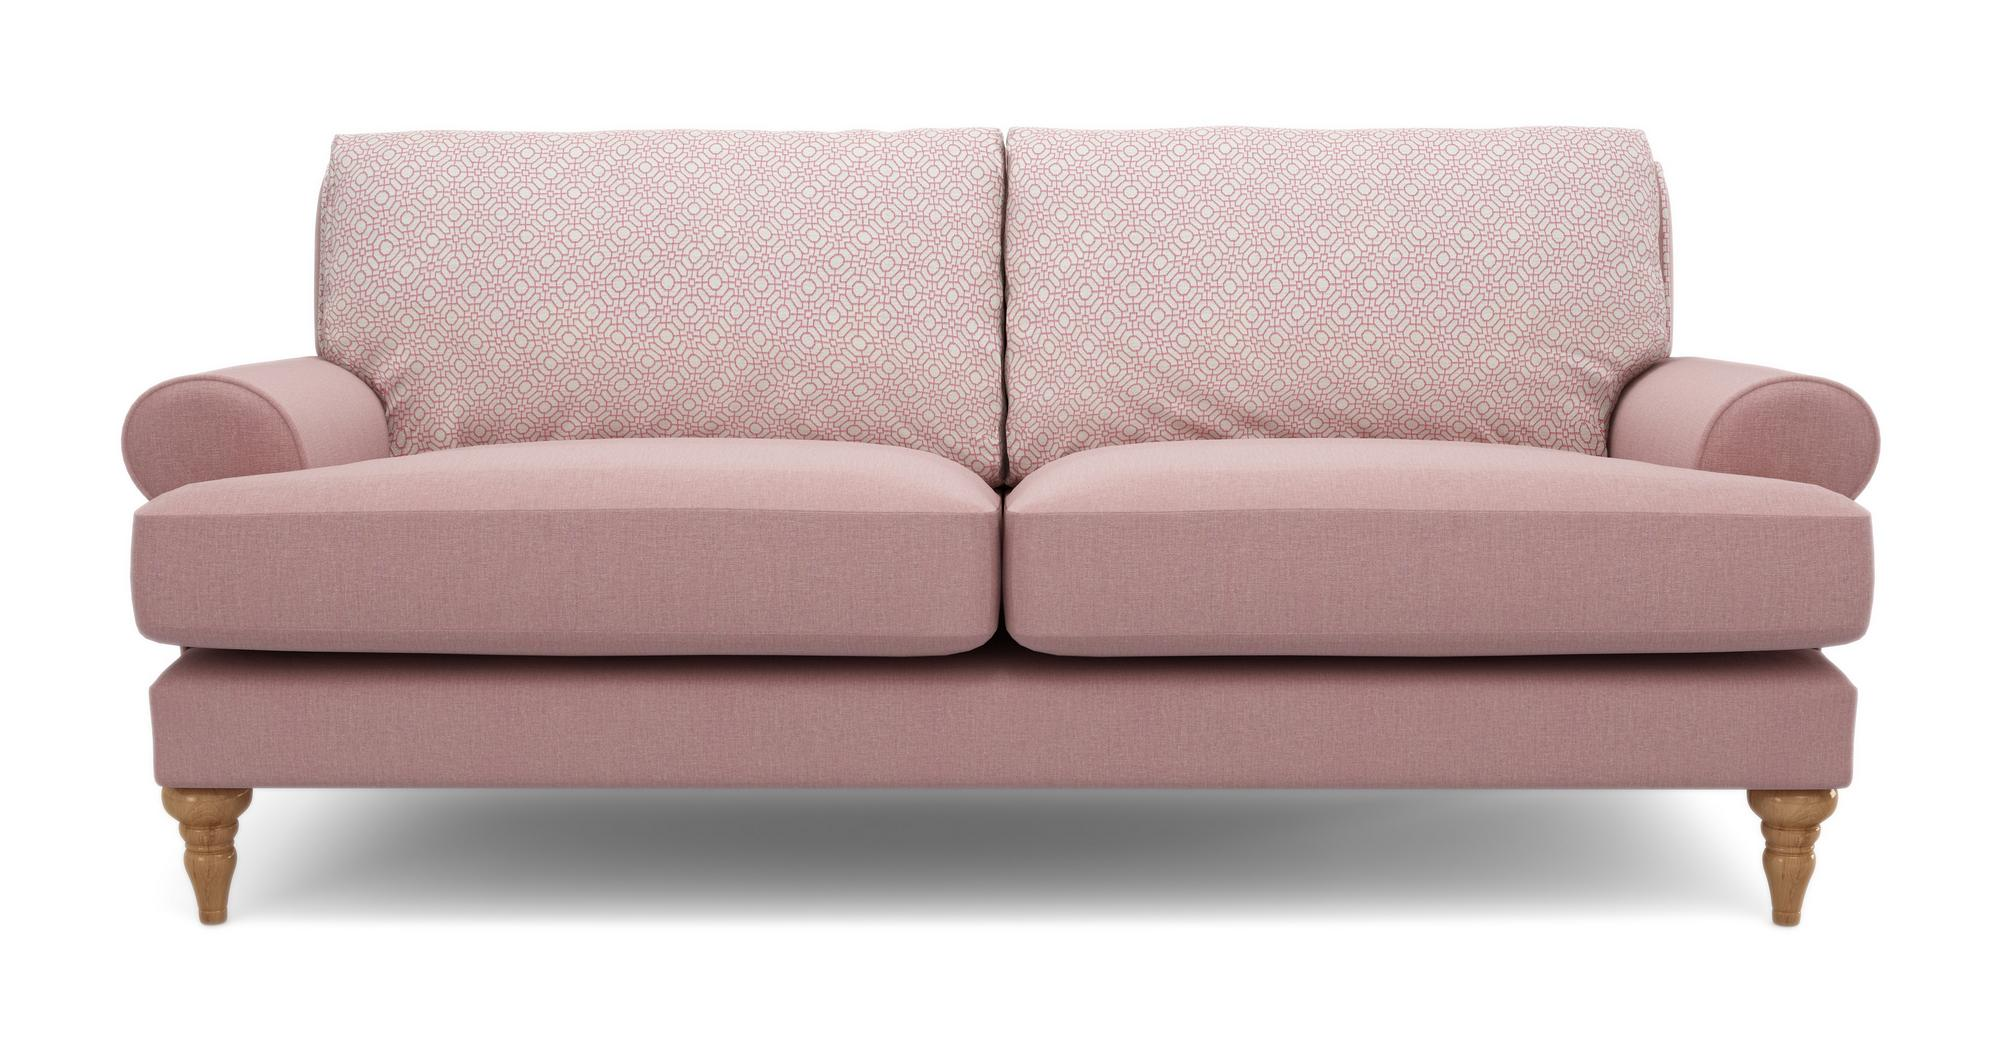 Dfs Itsy Pink Fabric Foam Maxi Sofa Armchair Banquette